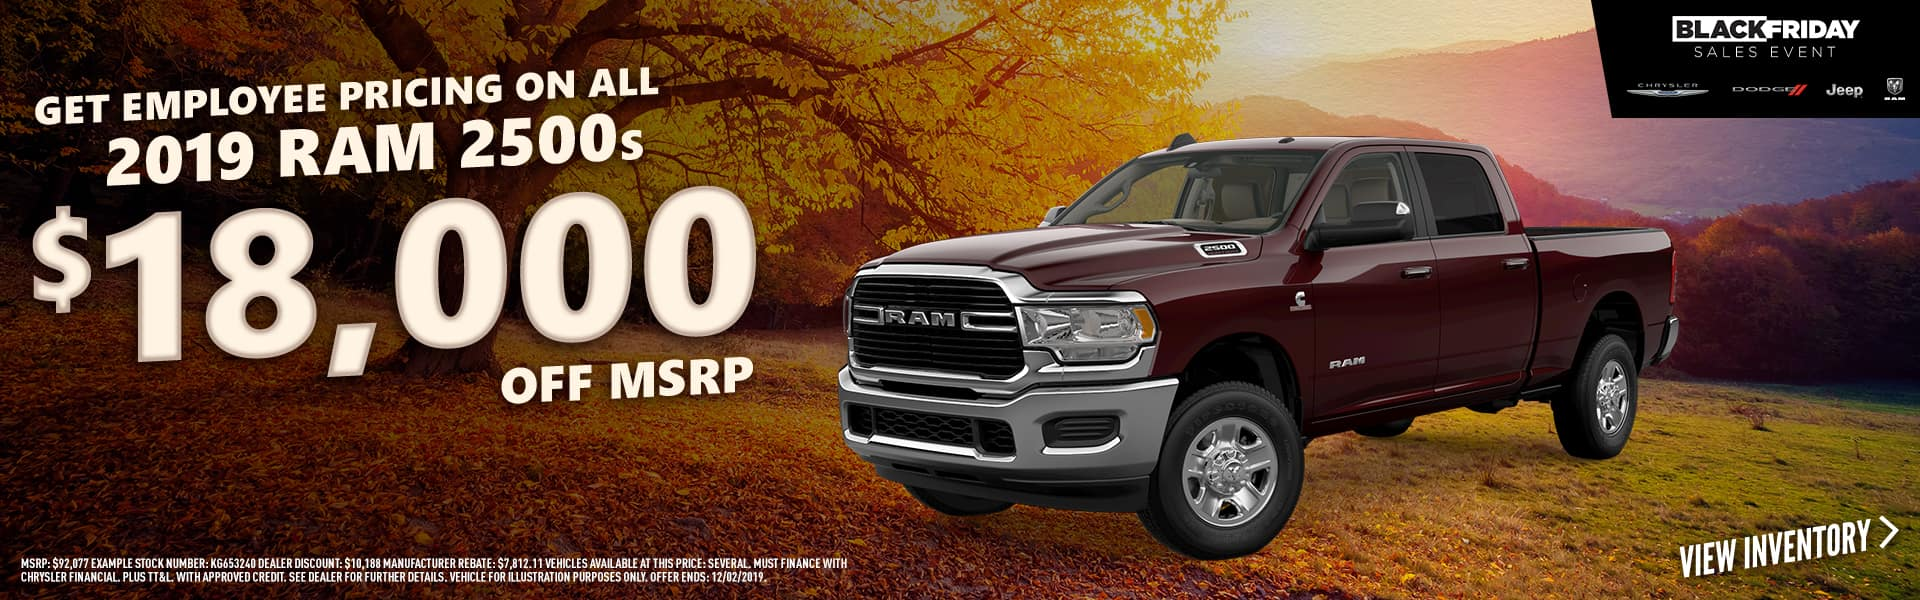 2019 RAM 2500s - $18,000 off with Employee Pricing on remaining 2019 RAM 2500s